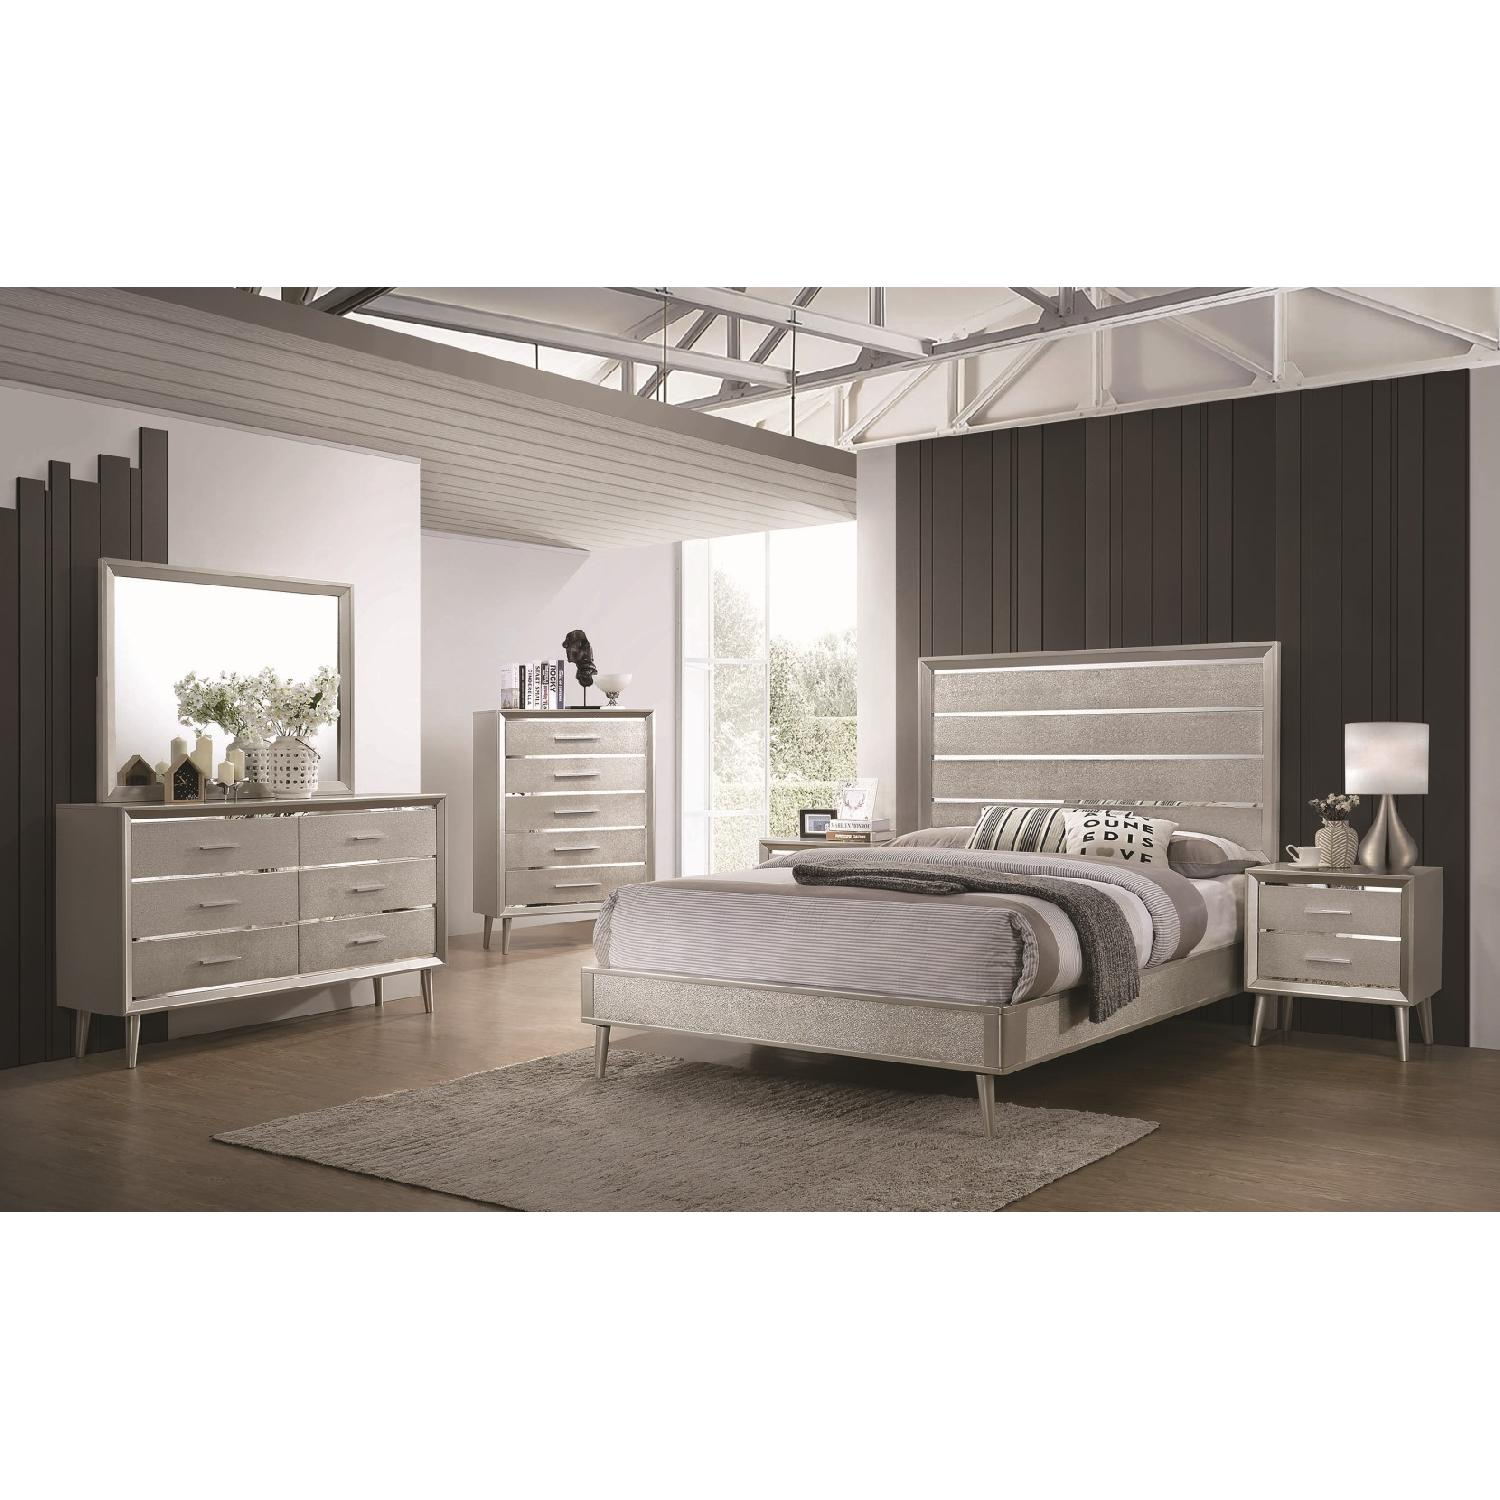 Mid Century Style Full Bed in Metallic Silver Glitter Design - image-3